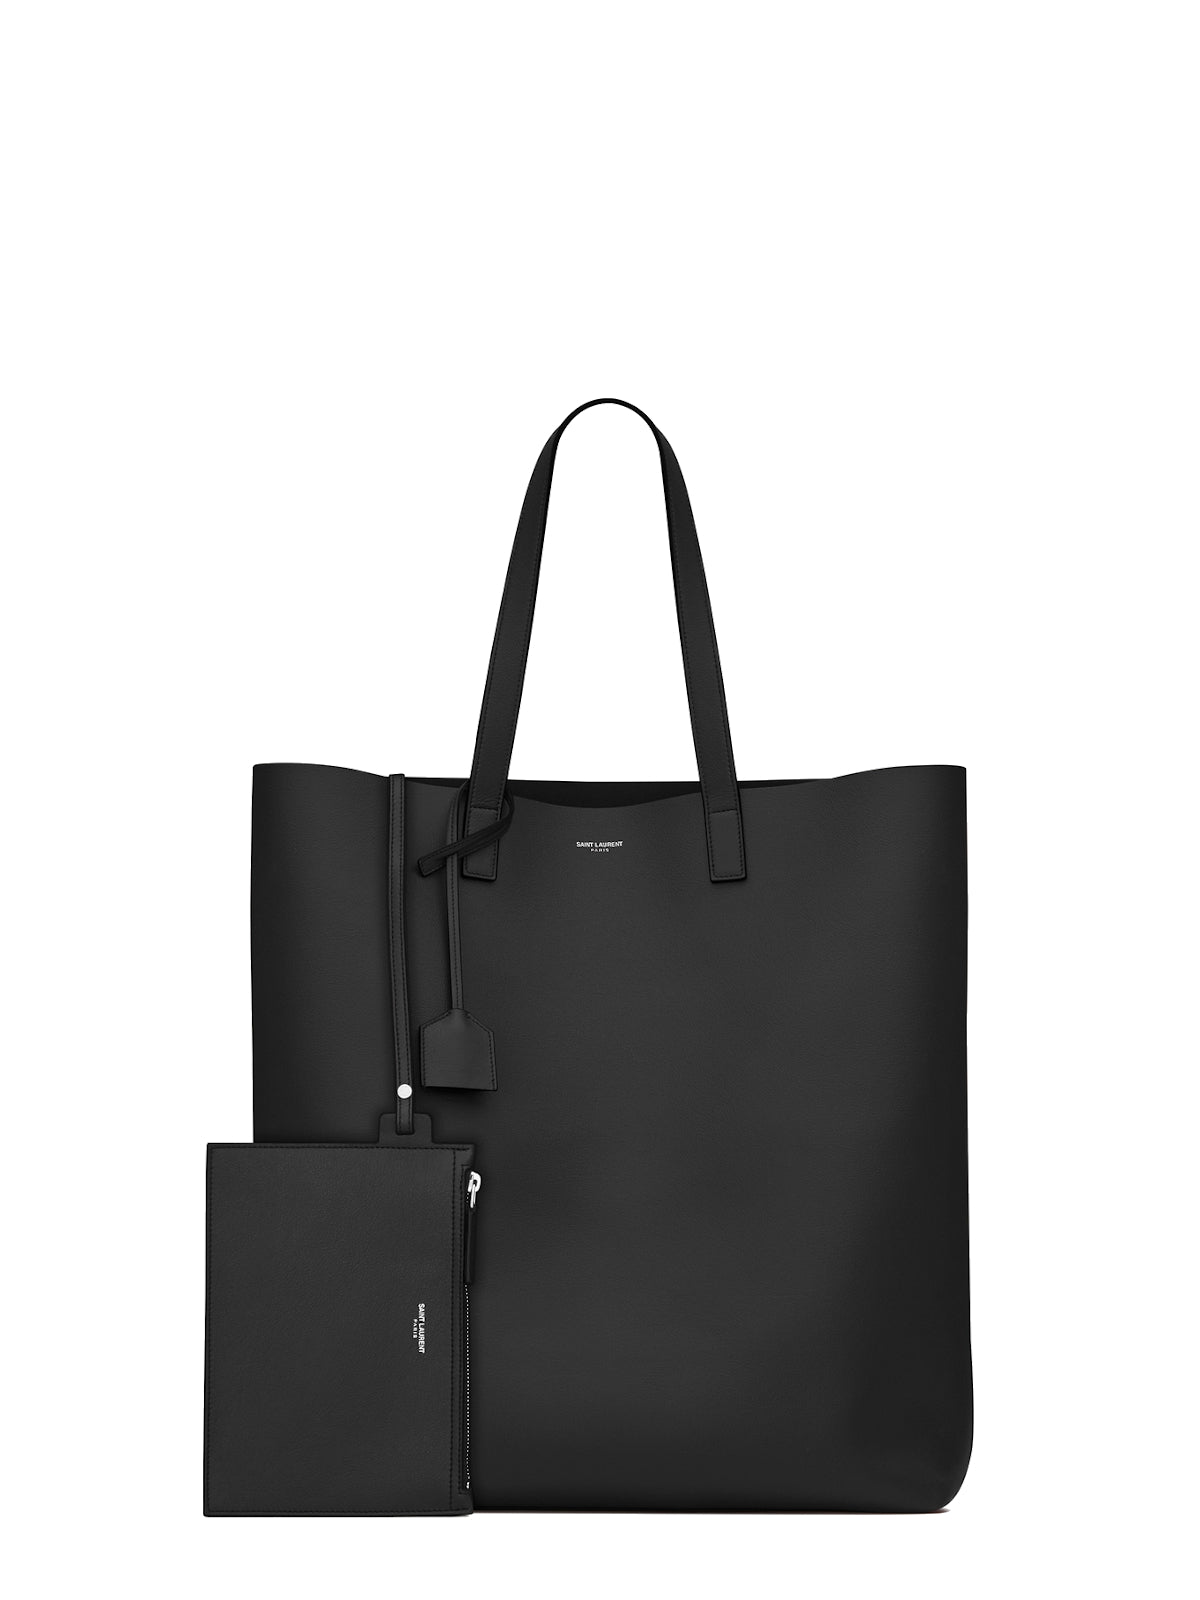 BORSA SHOPPER CITY